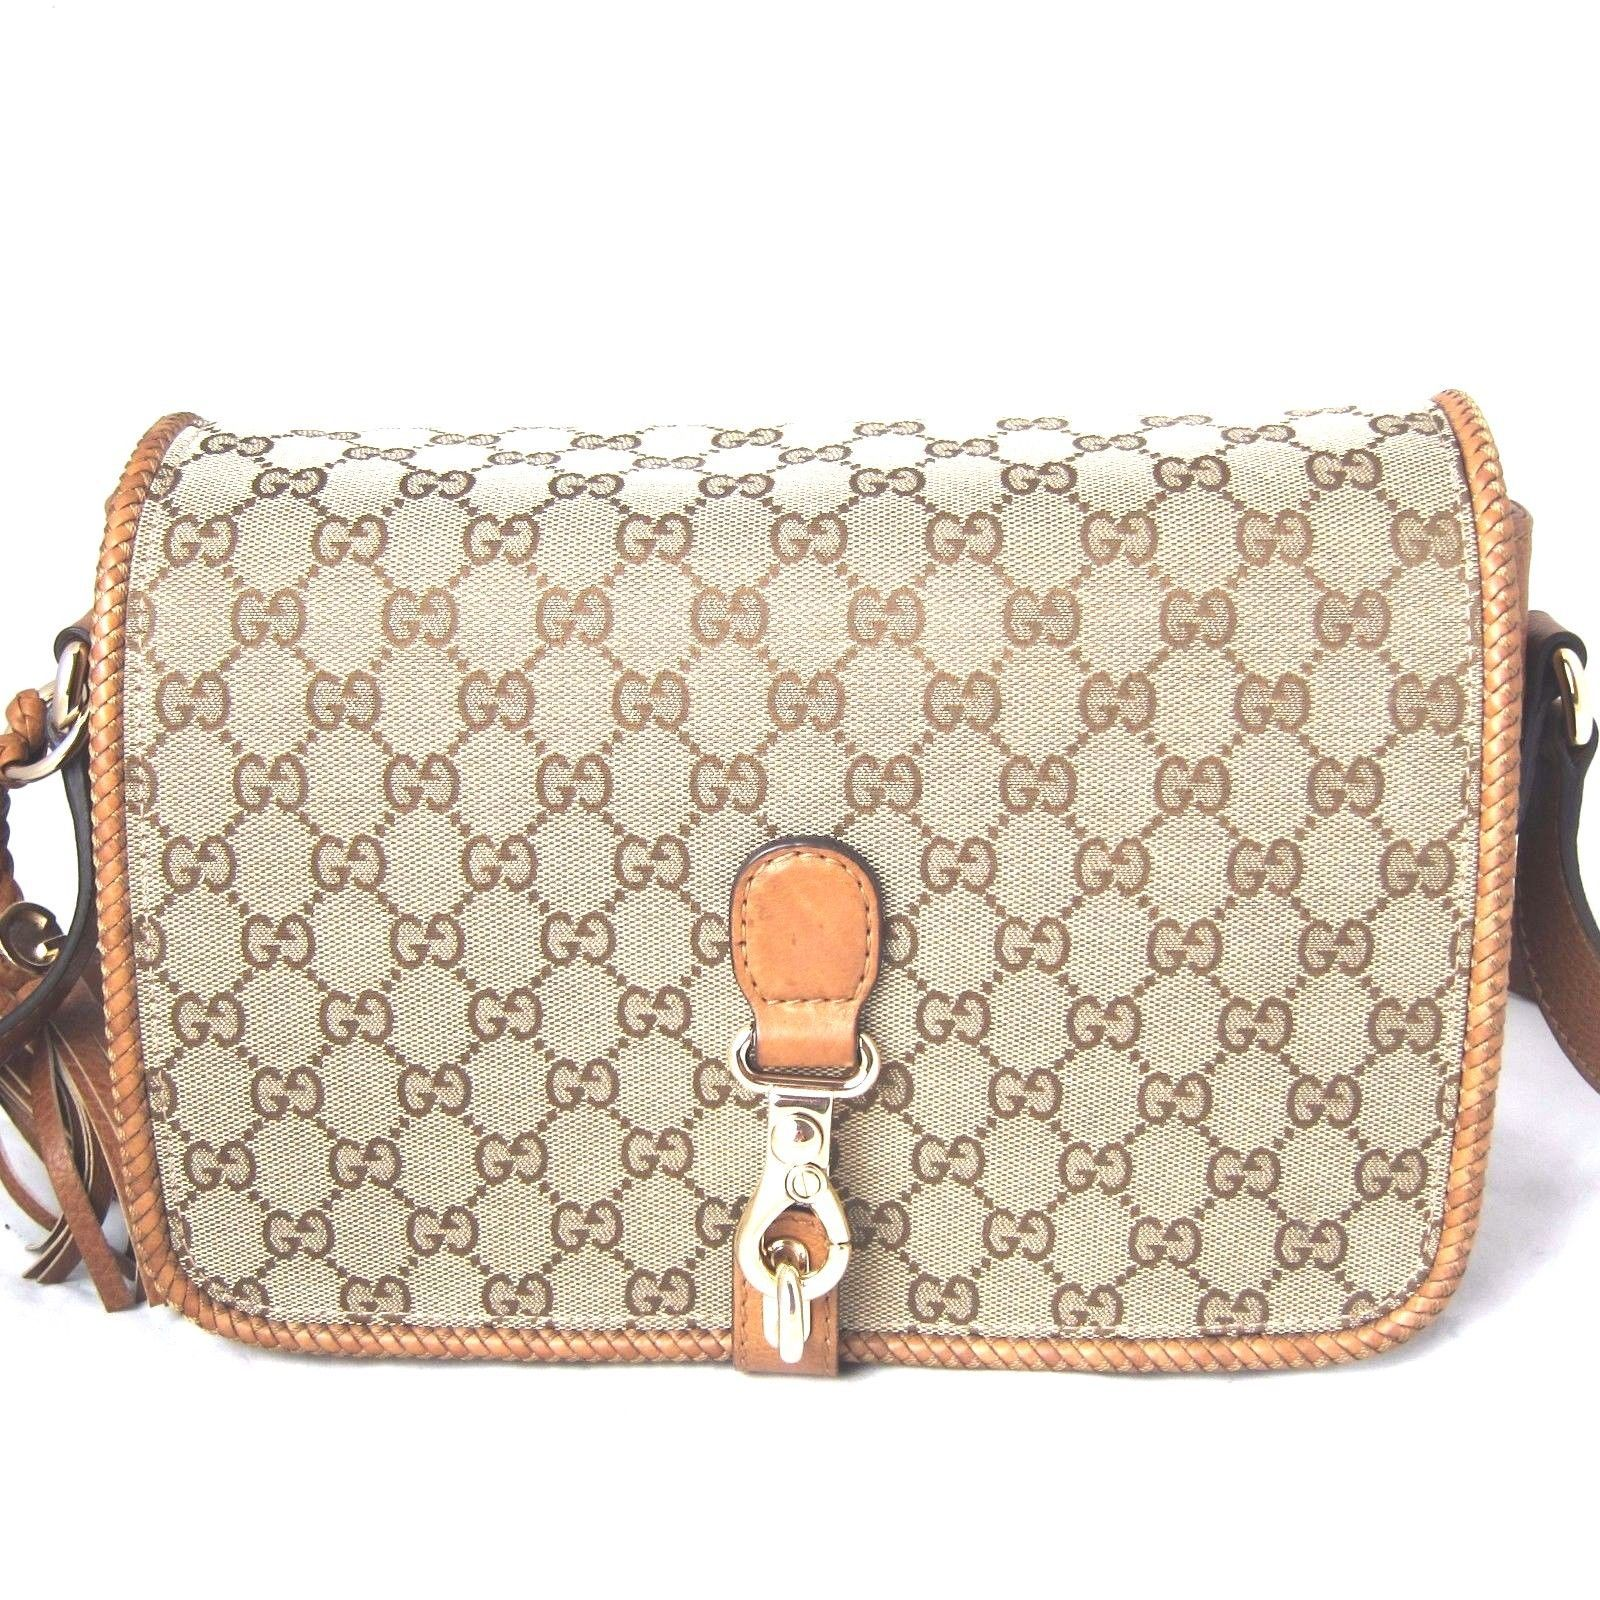 5339cad23870 K-GU1725 New Authentic Gucci Women Canvas and 50 similar items